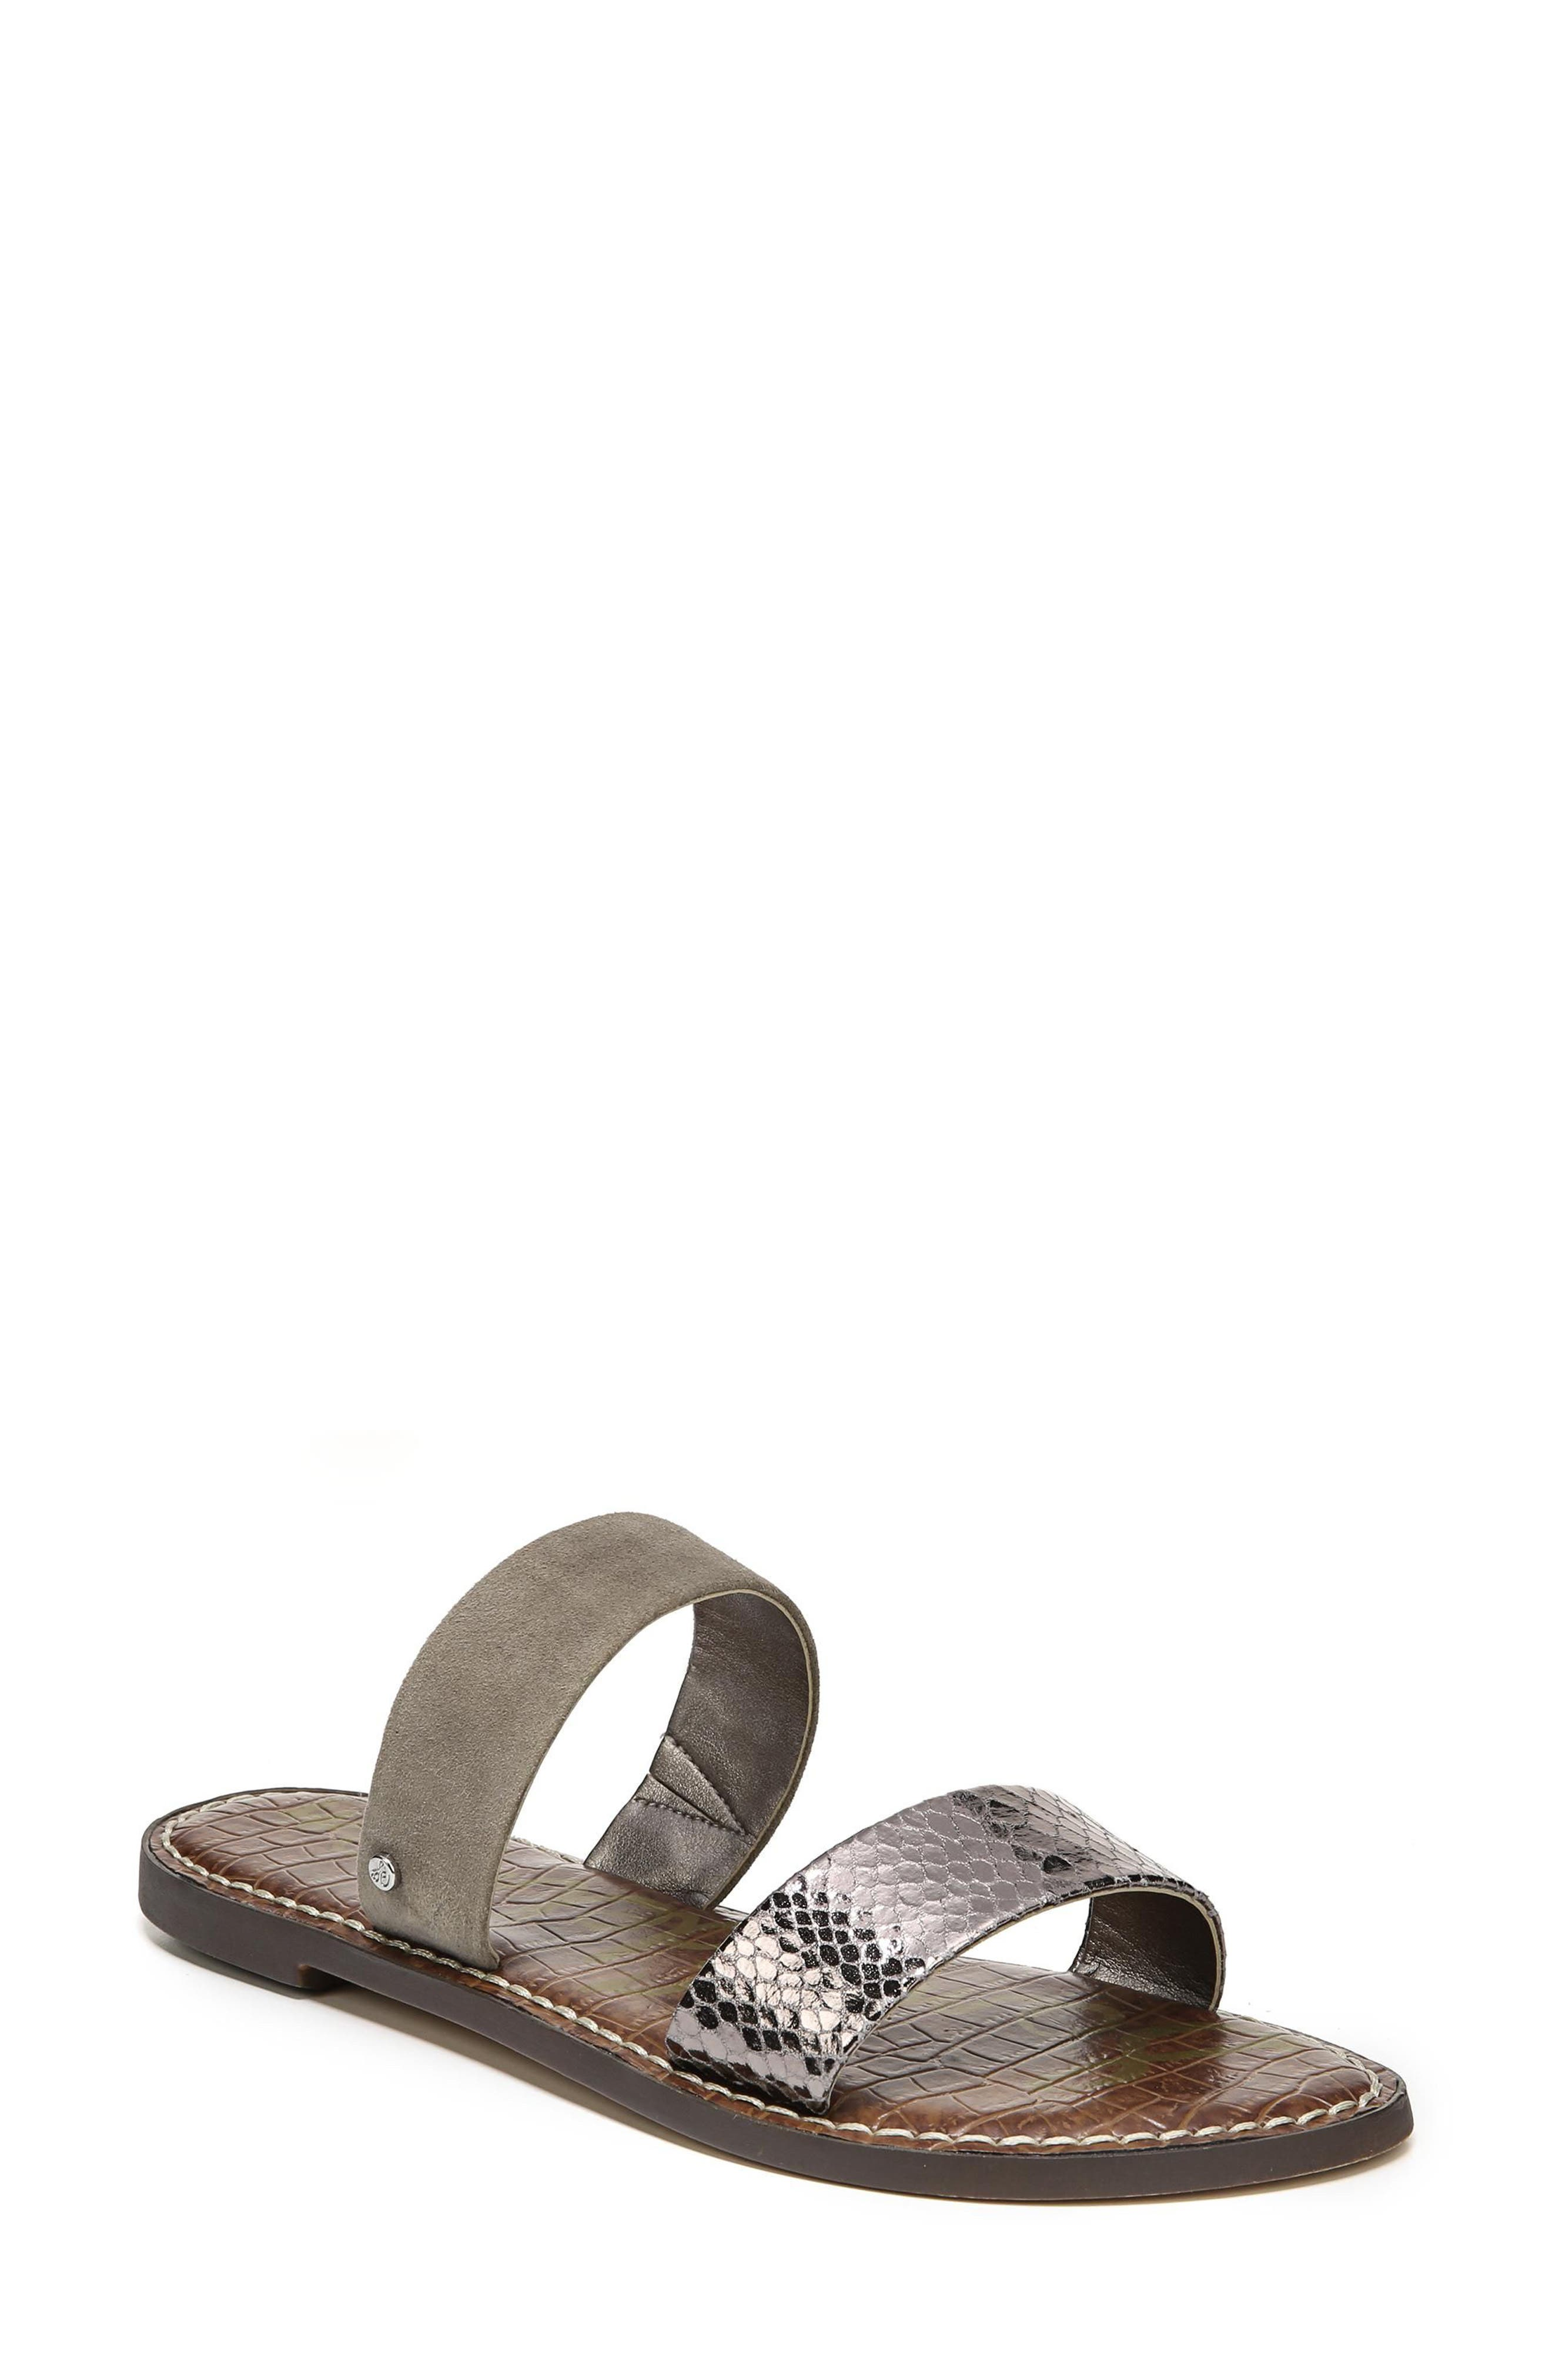 Gala Two Strap Slide Sandal,                         Main,                         color, PEWTER/ PUTTY